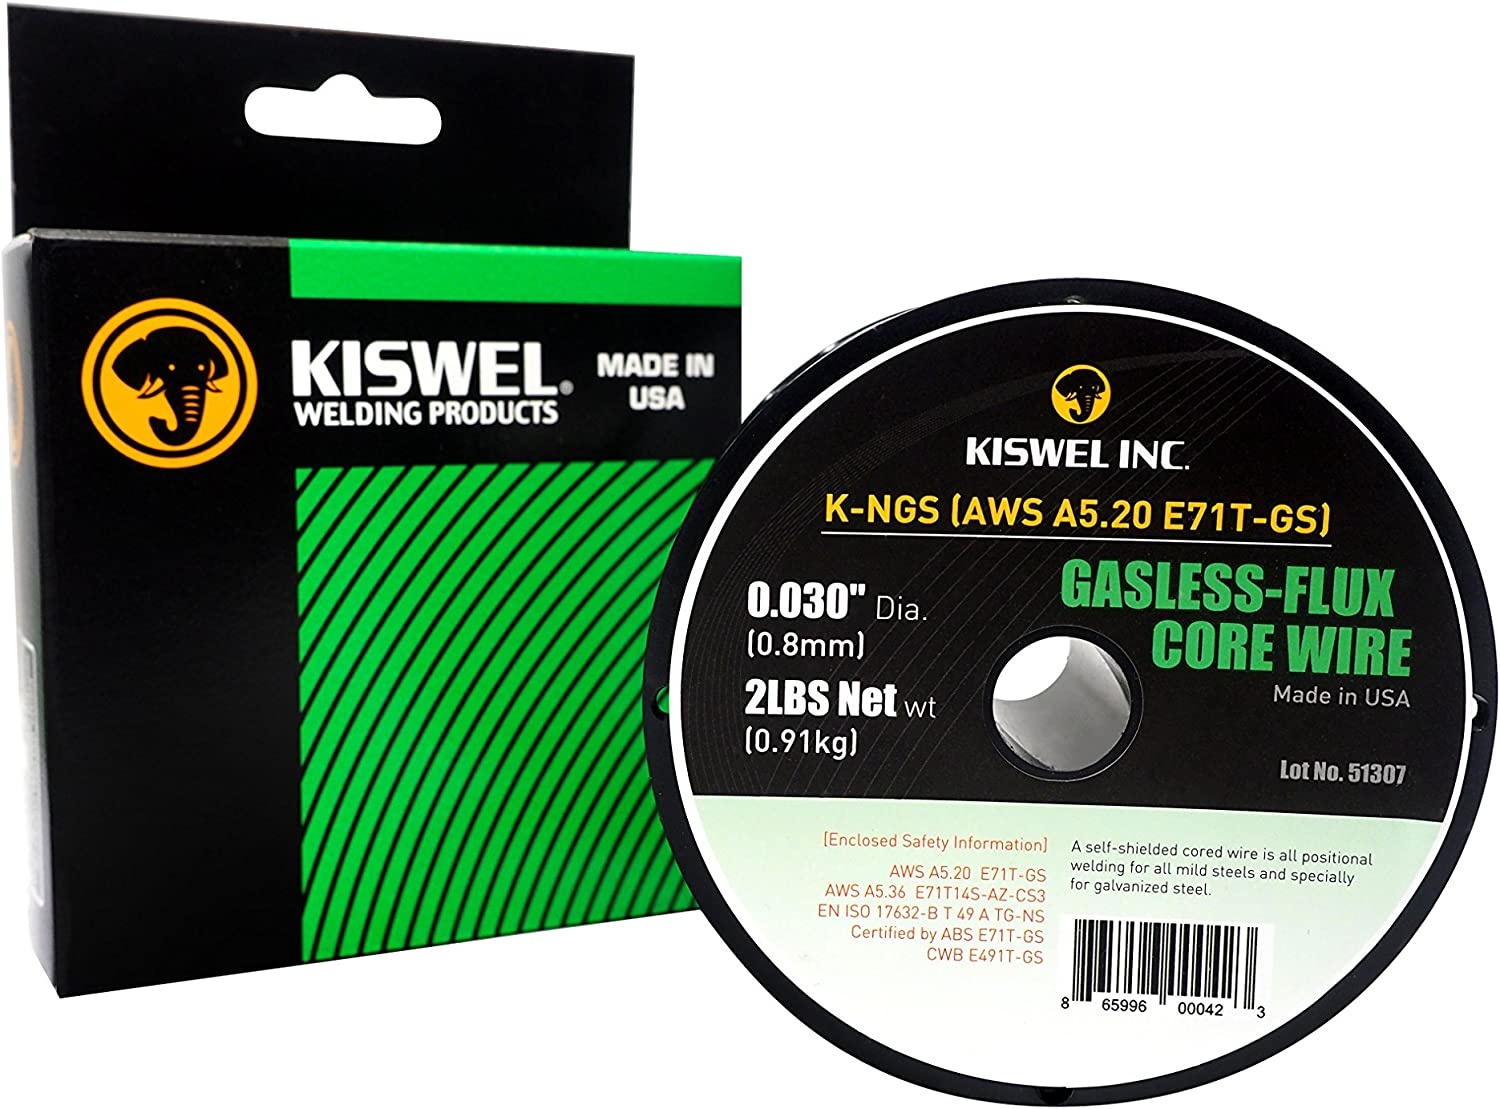 2lb Kiswel USA K-NGS E-71TGS 0.030in Made in USA Gasless-Flux Core Wire Welding wire Dia 2lb